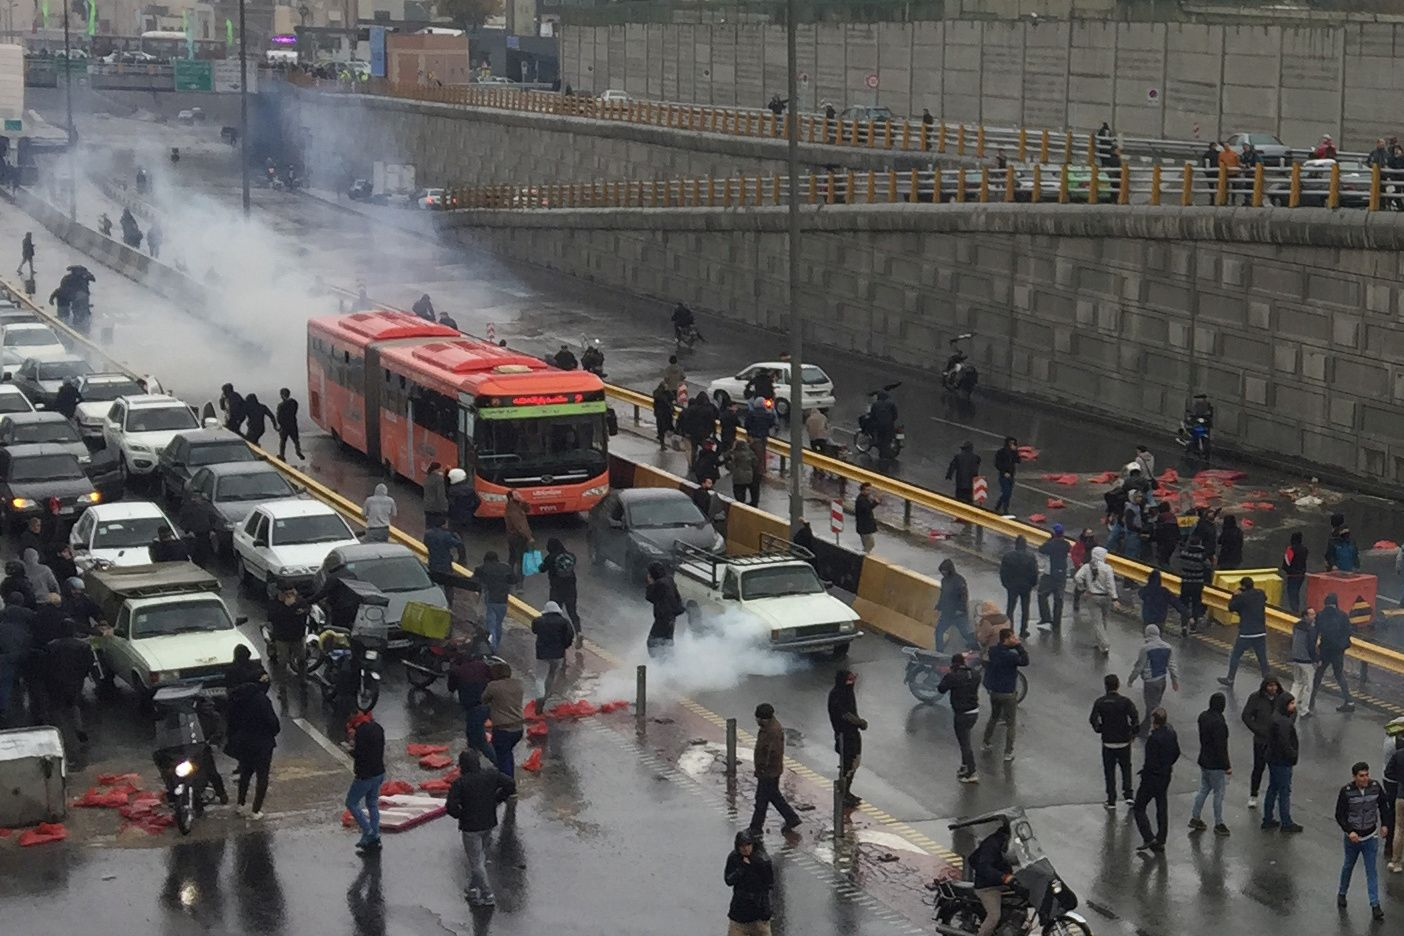 What We're Watching: Angry Iranians on the streets